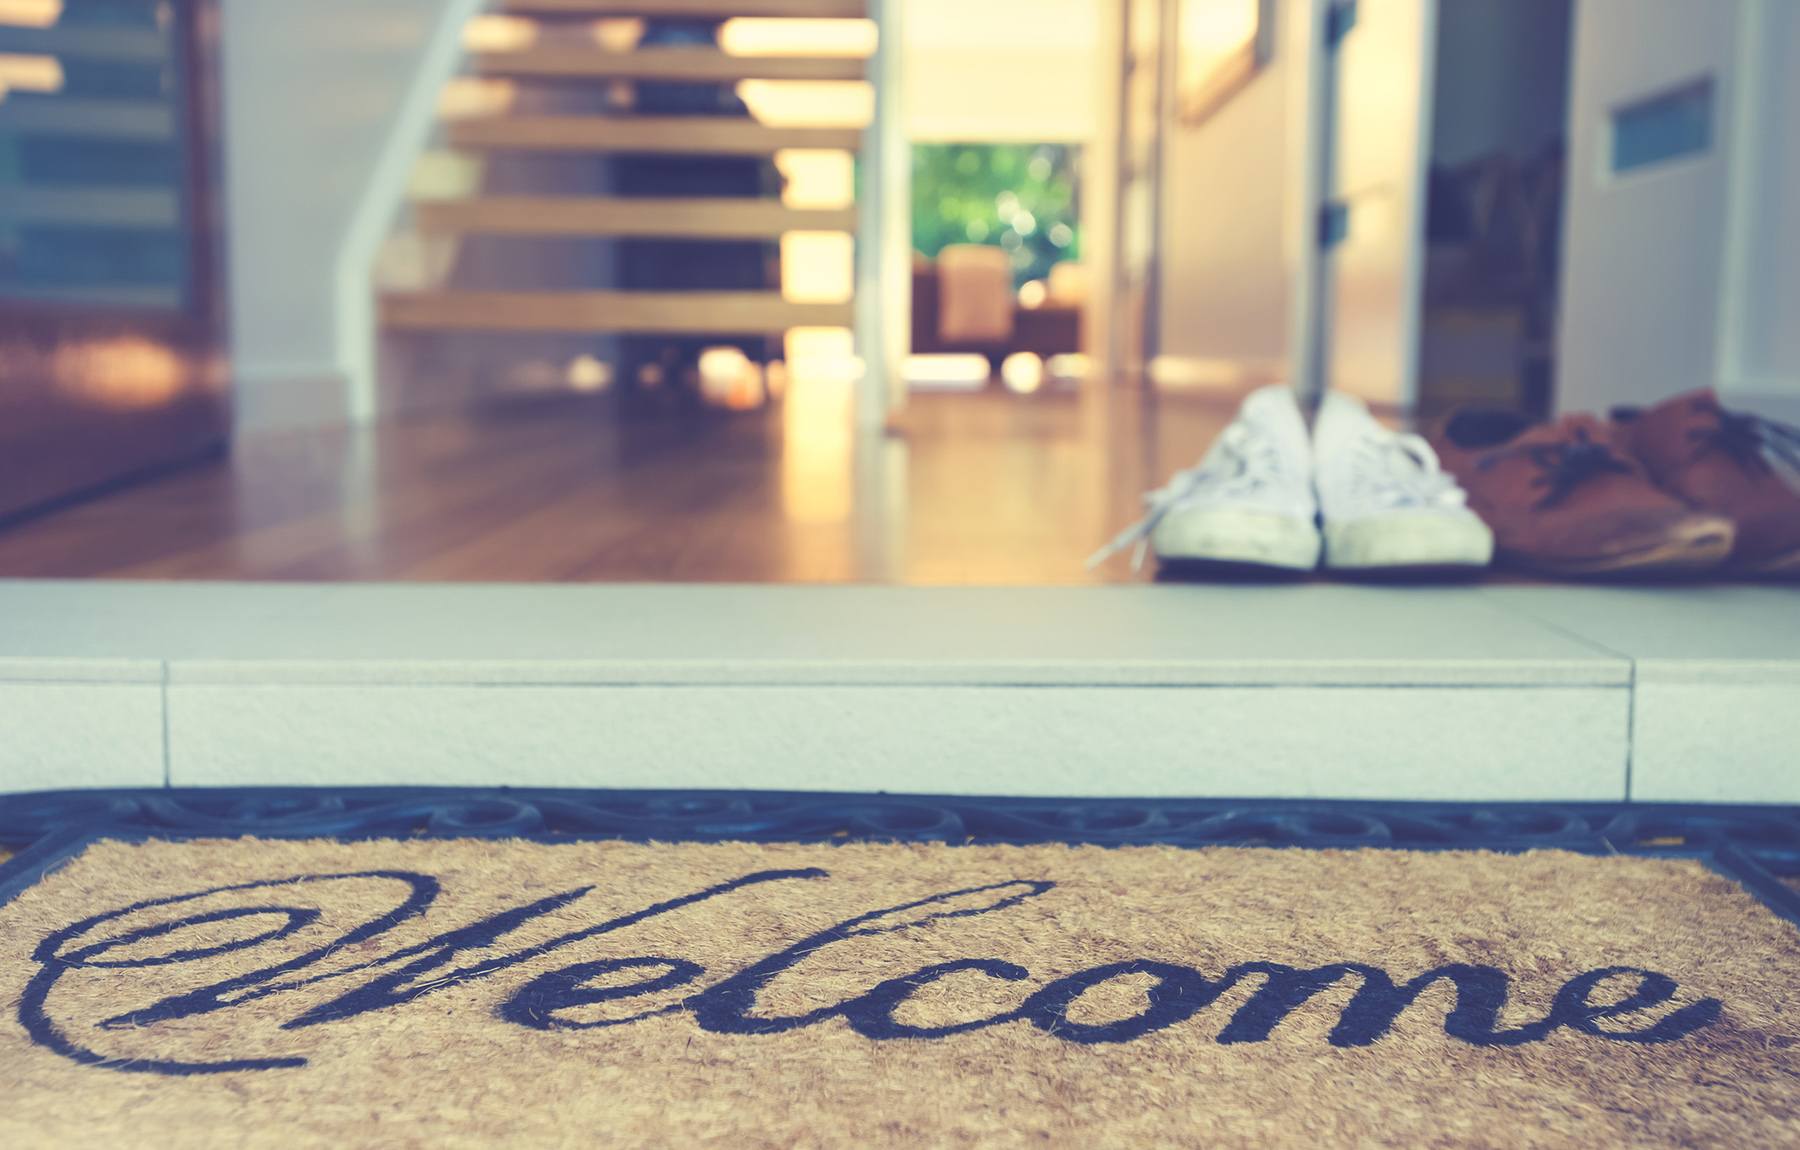 It's Time to Be the Welcome Mat